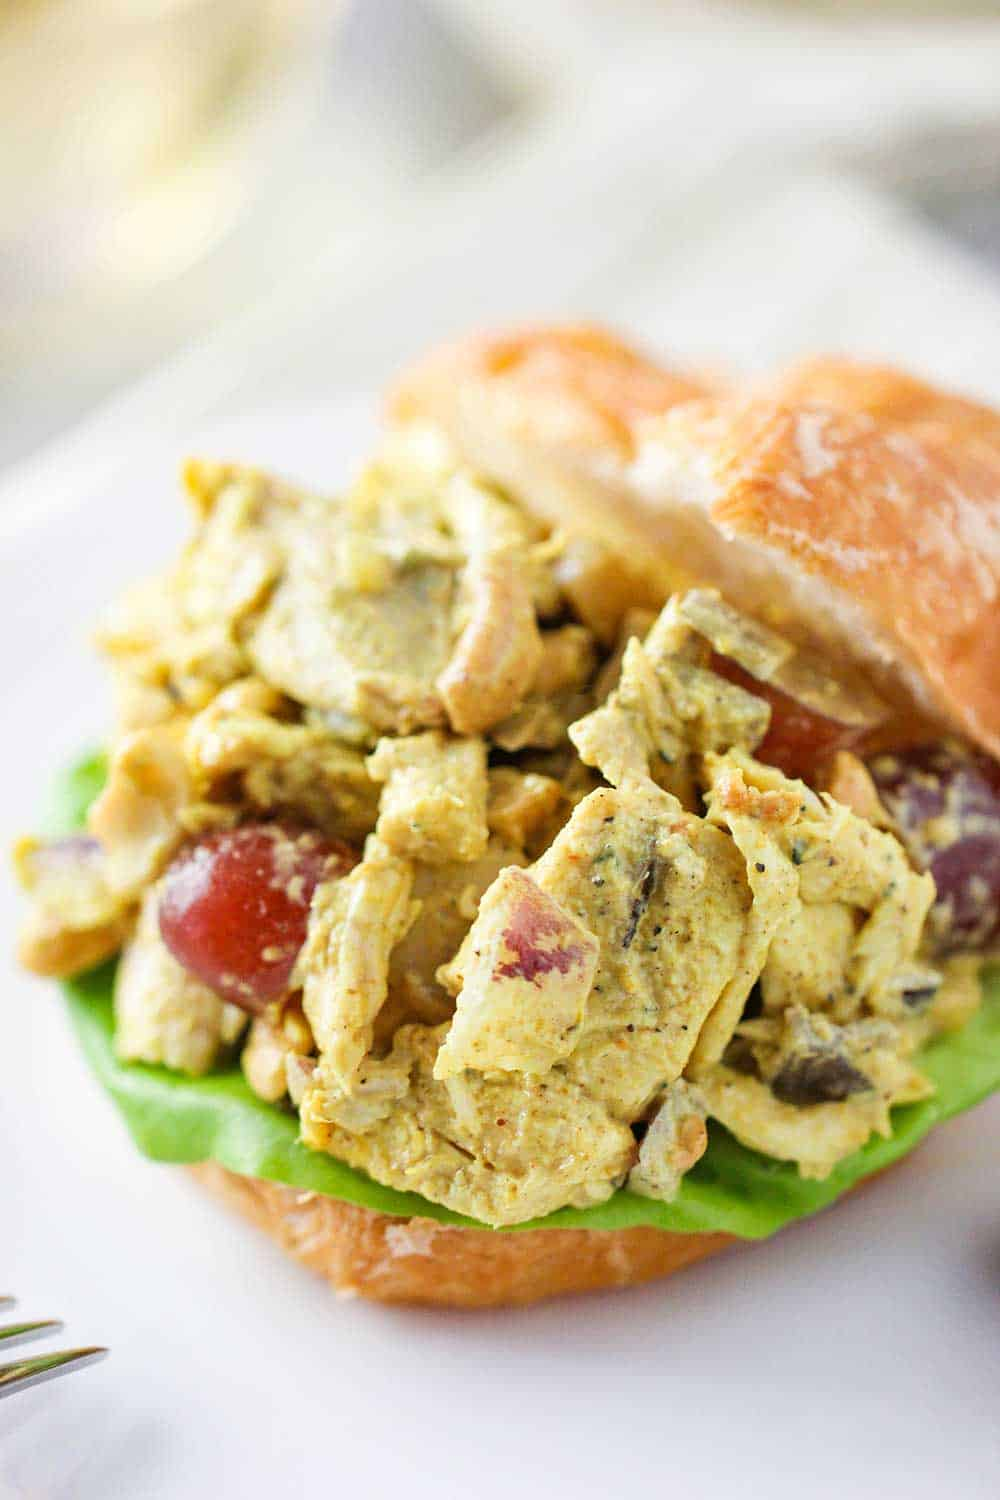 A close-up view of curry chicken salad between two croissant halves on a white plate.